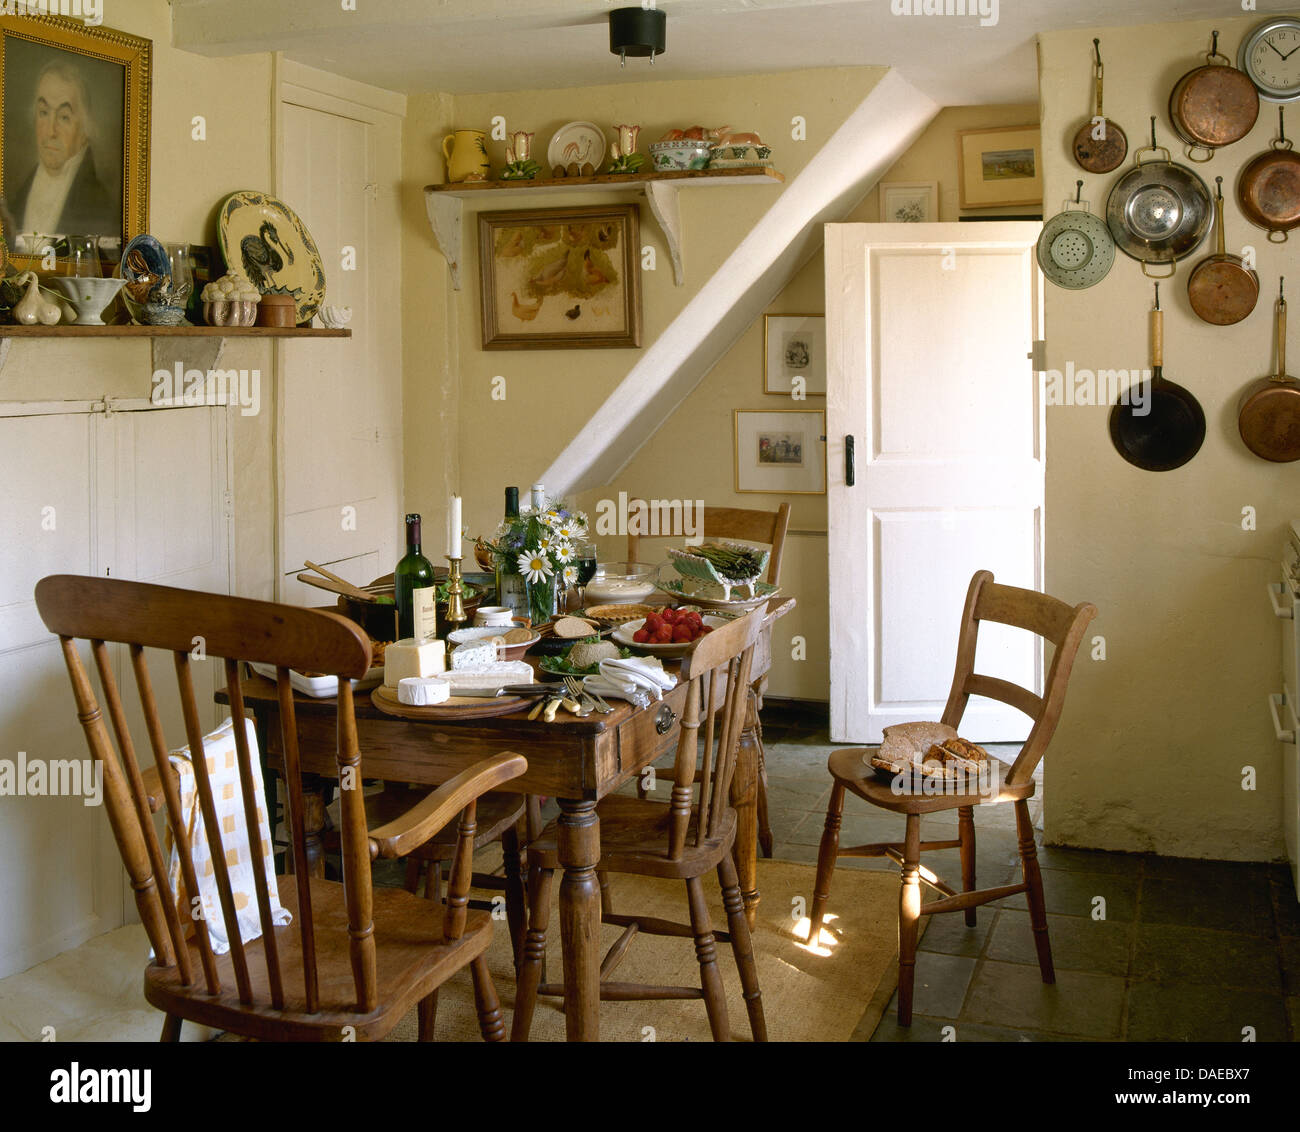 simple wooden chairs and old pine table set for lunch in cottage kitchen DAEBX7